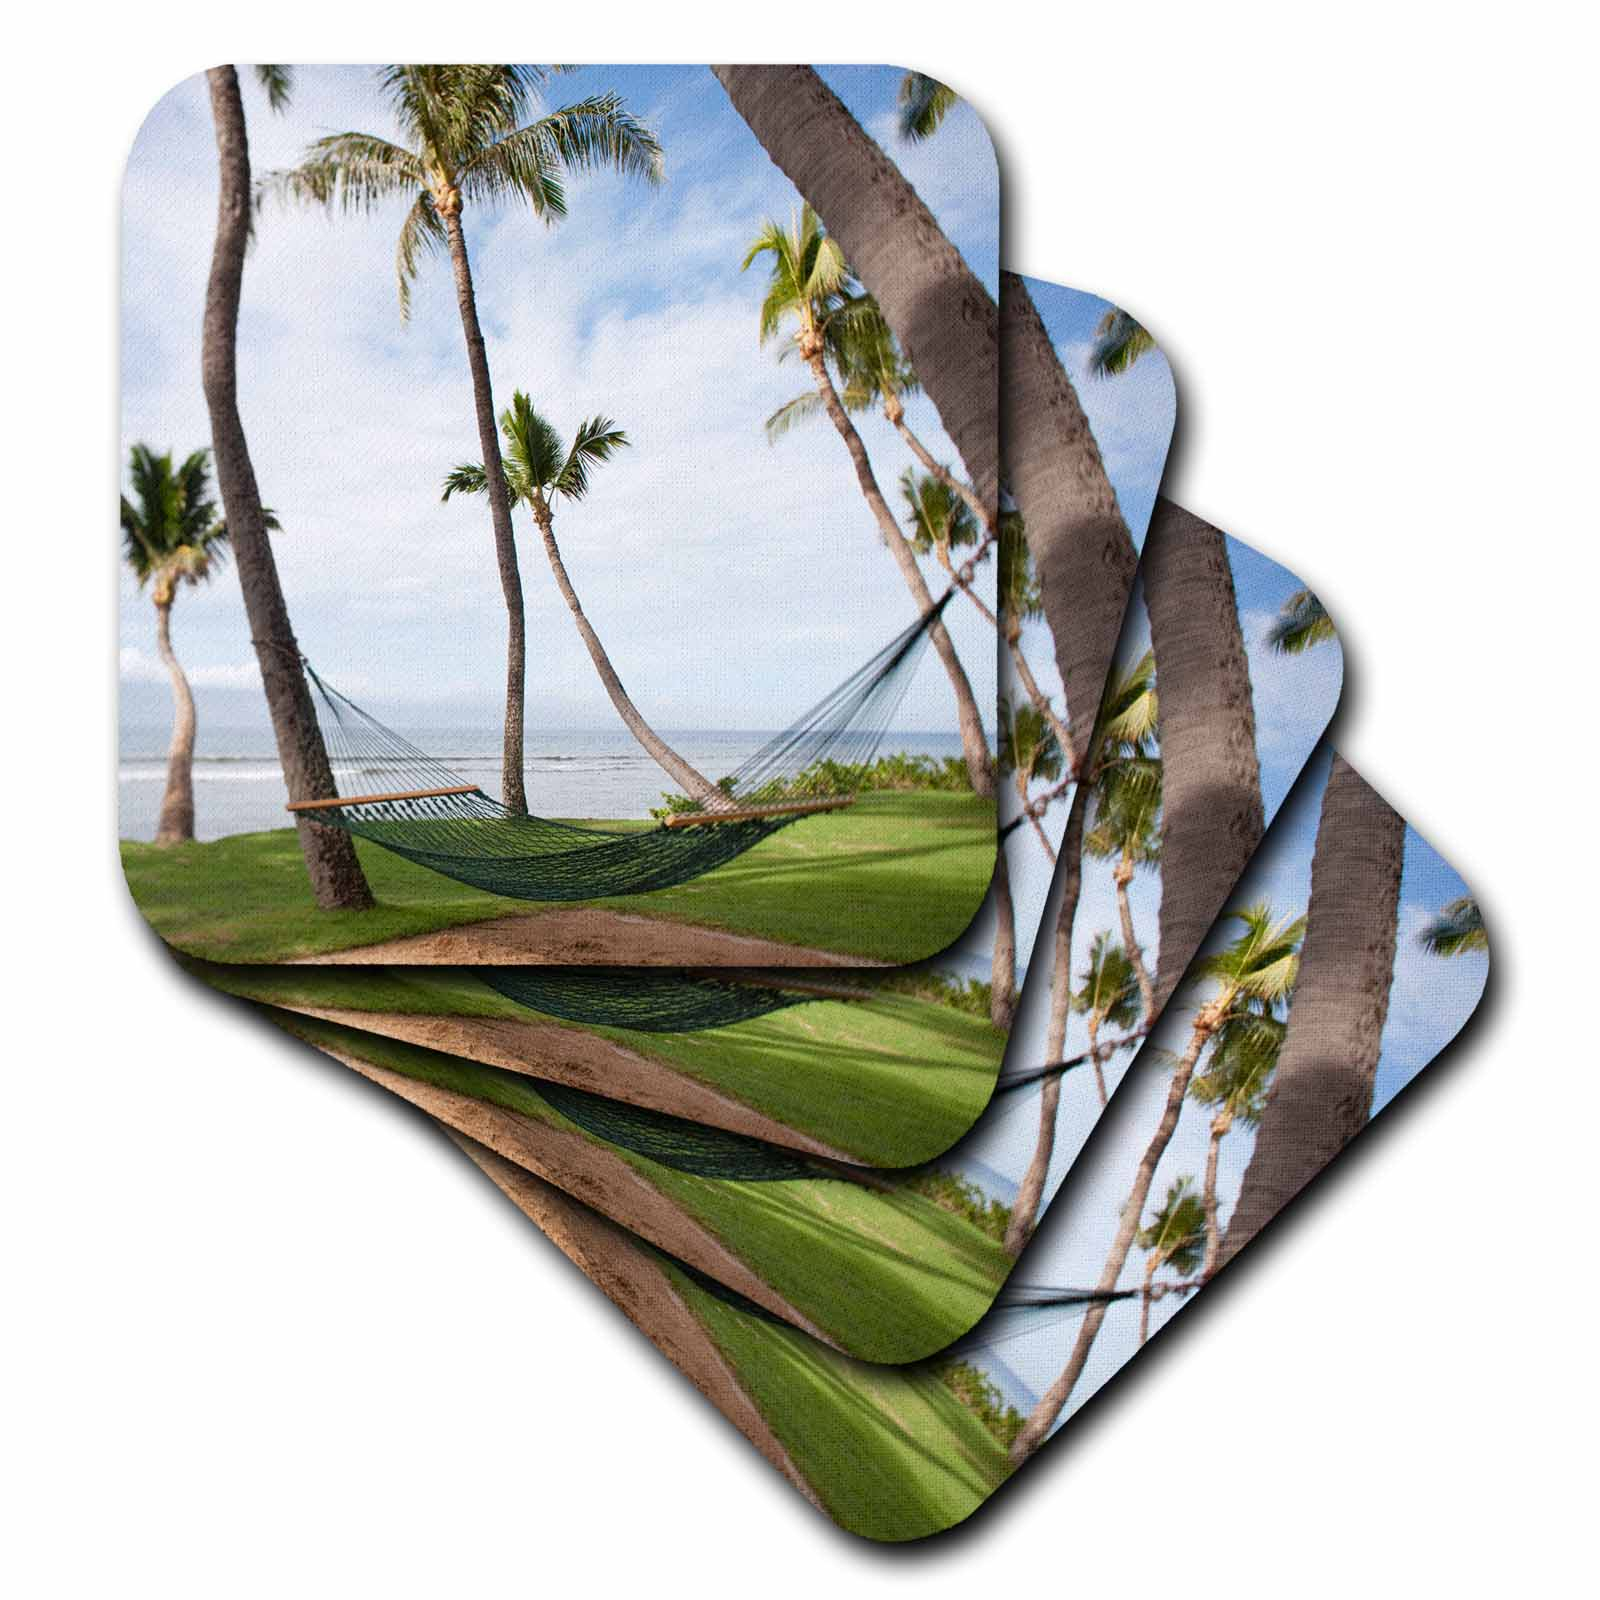 3dRose Hammock under Hawaiian palm trees, Maui, Hawaii US10 JGS0038 Jim Goldstein, Ceramic Tile Coasters, set of 4 by 3dRose